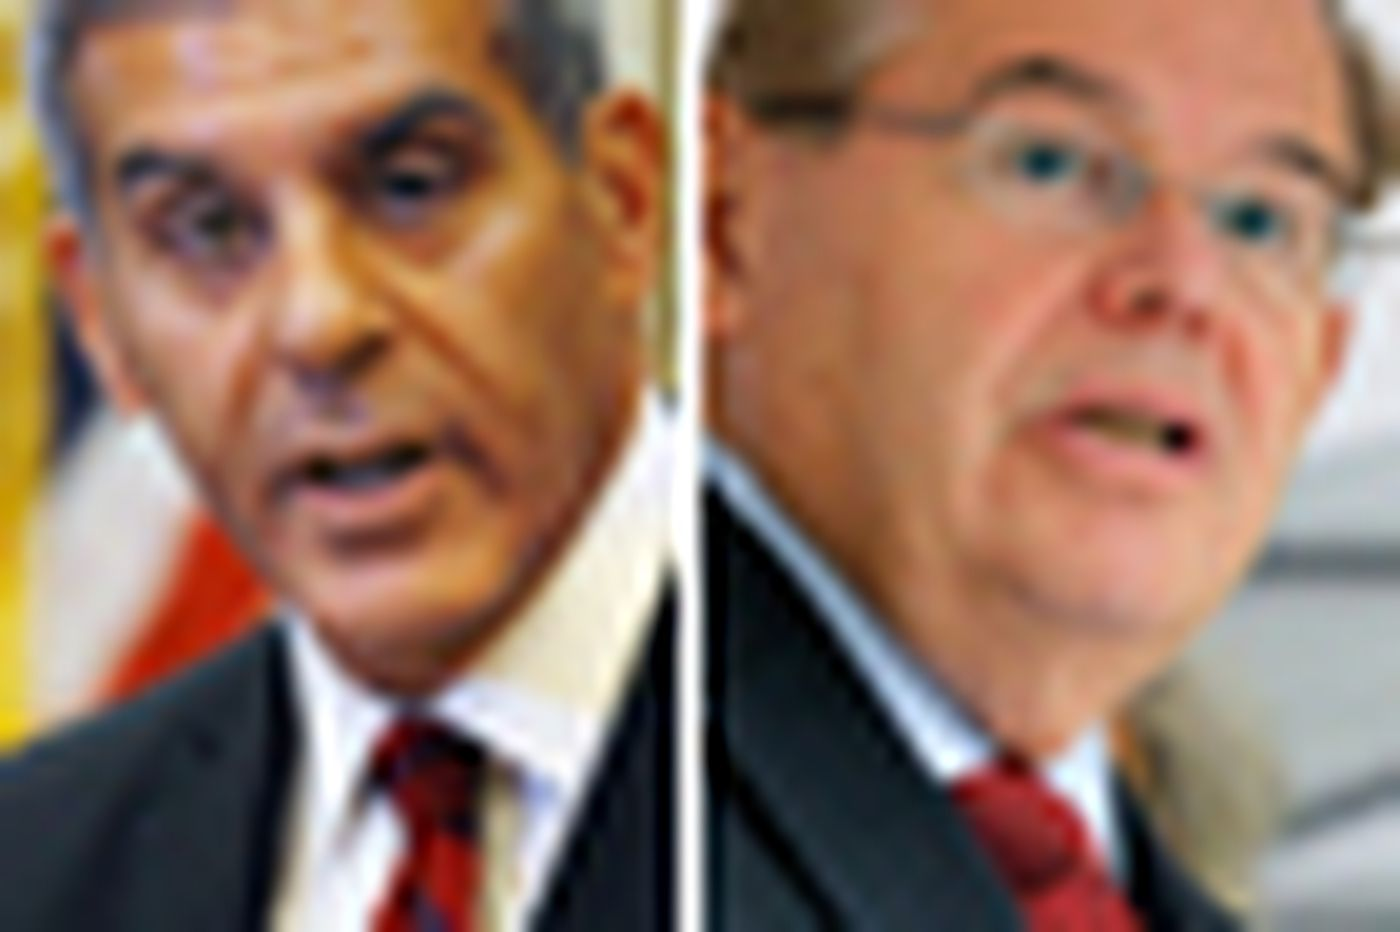 In N.J., Menendez and Kyrillos wage a (mostly) tame campaign for Senate